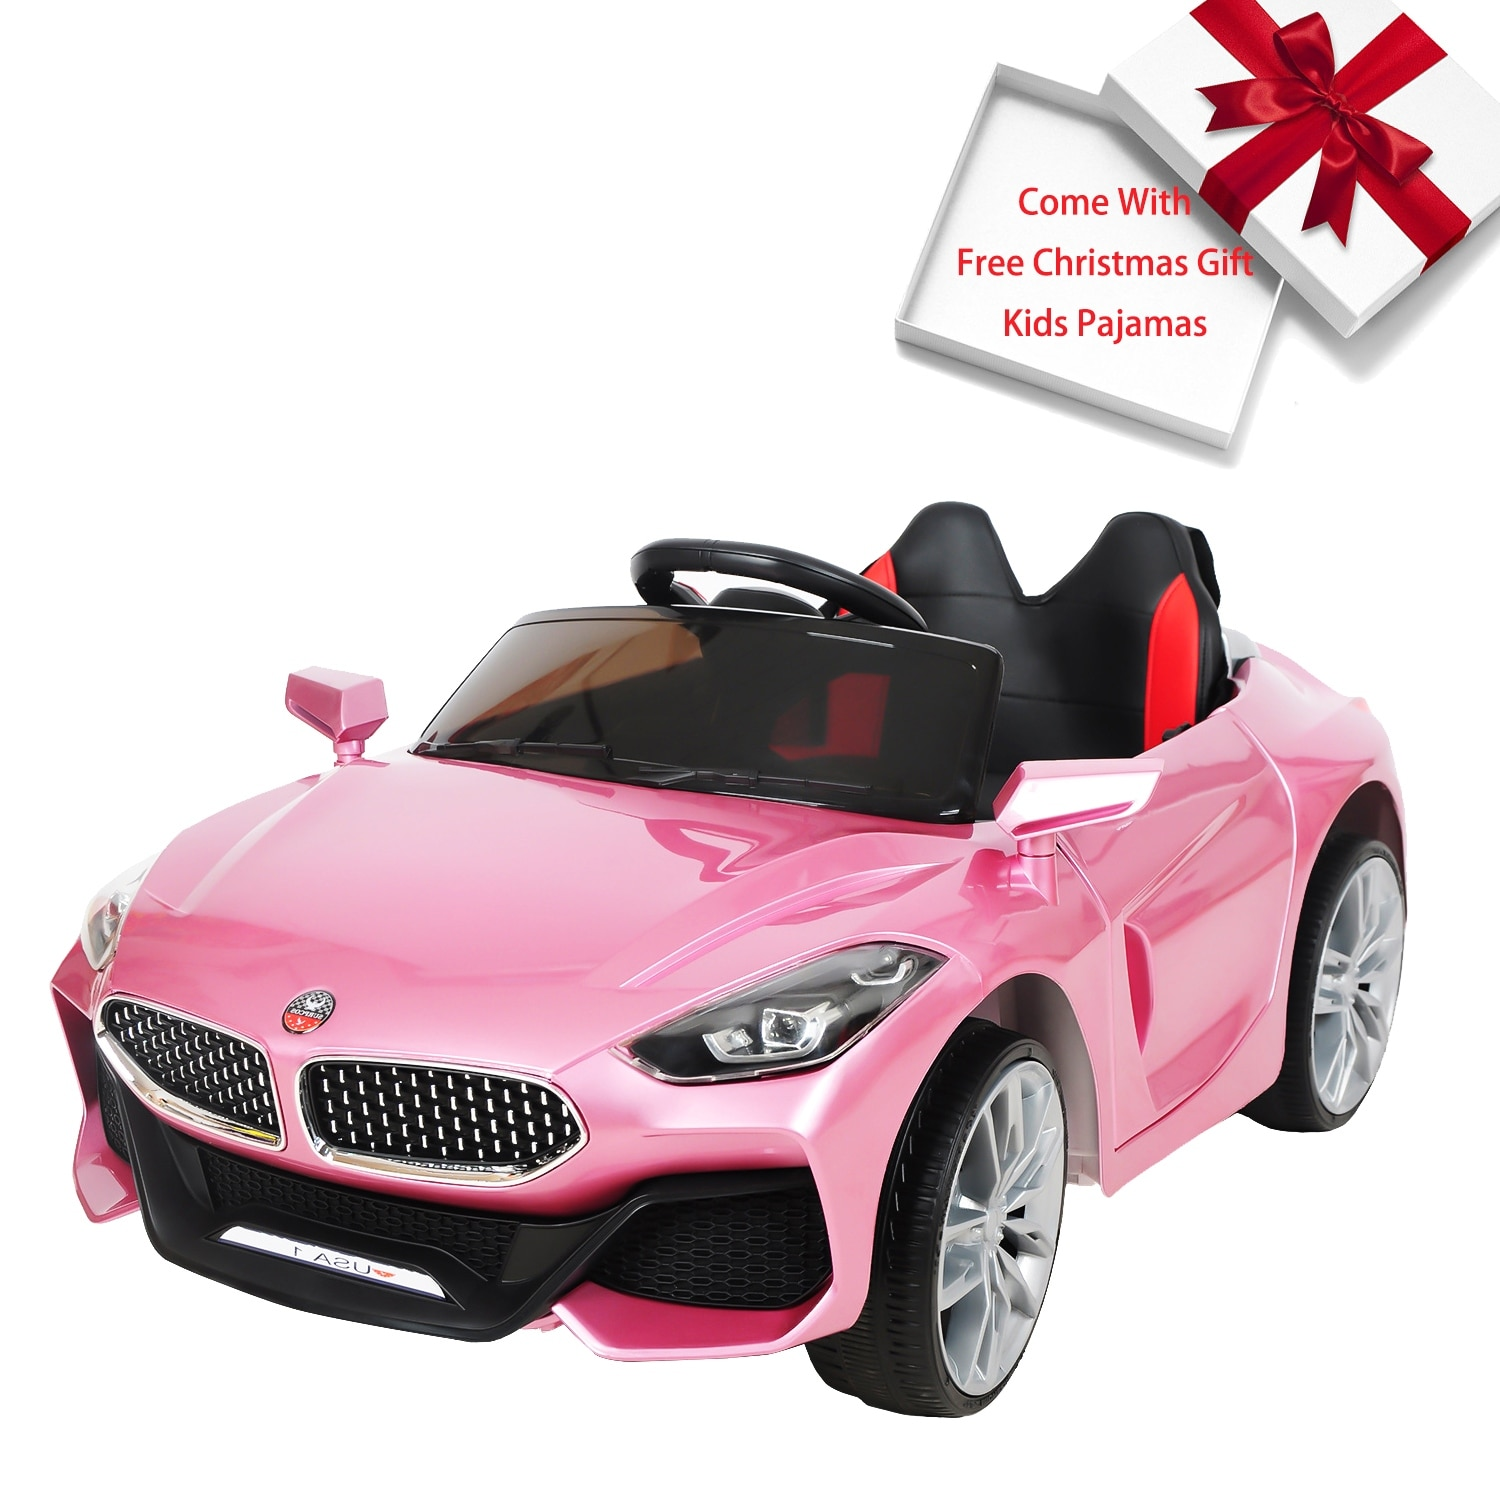 Cars For Kids >> Kids Ride On Car Electric Cars For Kids W Remote Control Pink